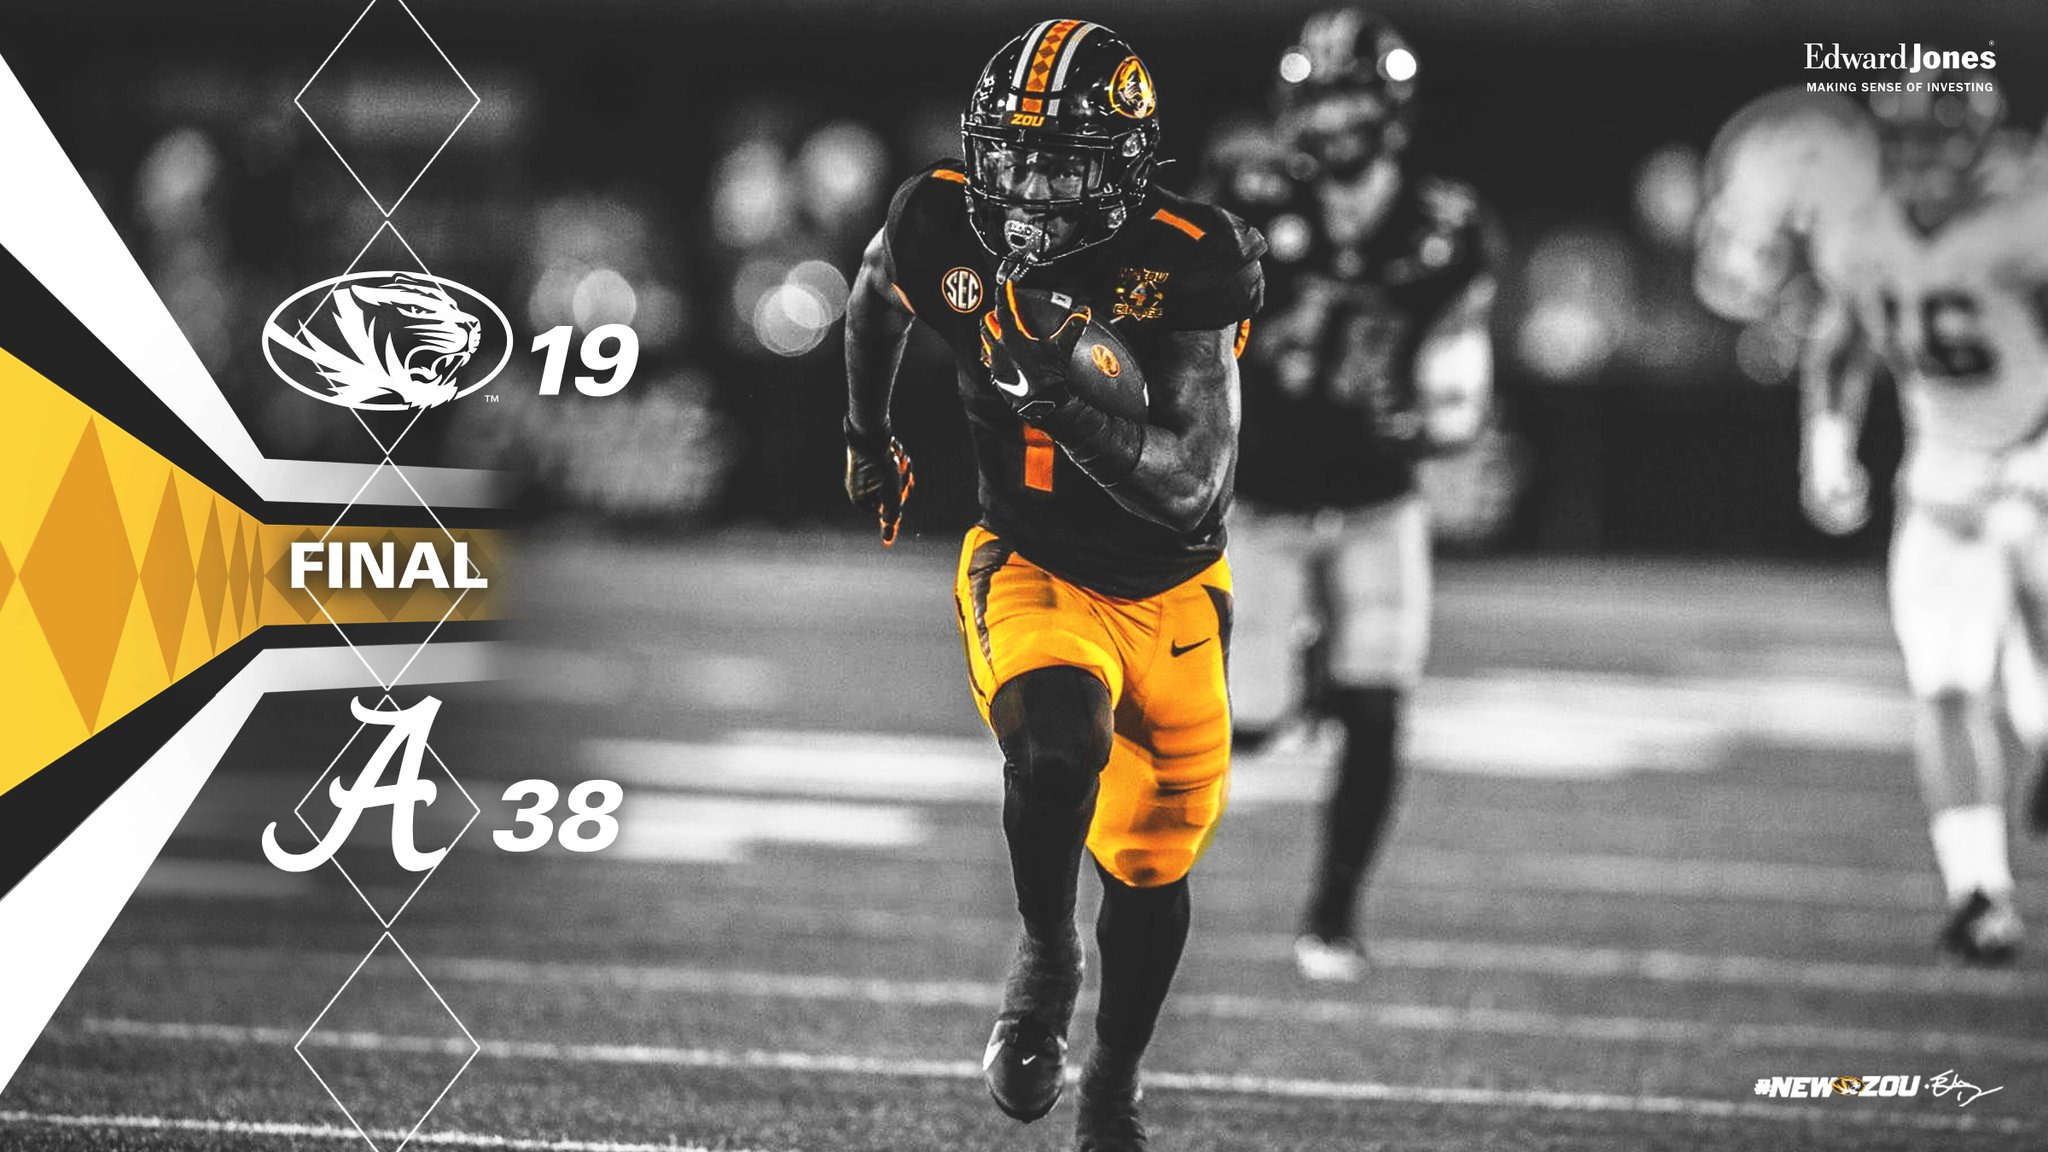 Mizzou Football On Twitter Final Battled Through The Final Whistle Focus Shifts To Tennessee Miz X Newzou